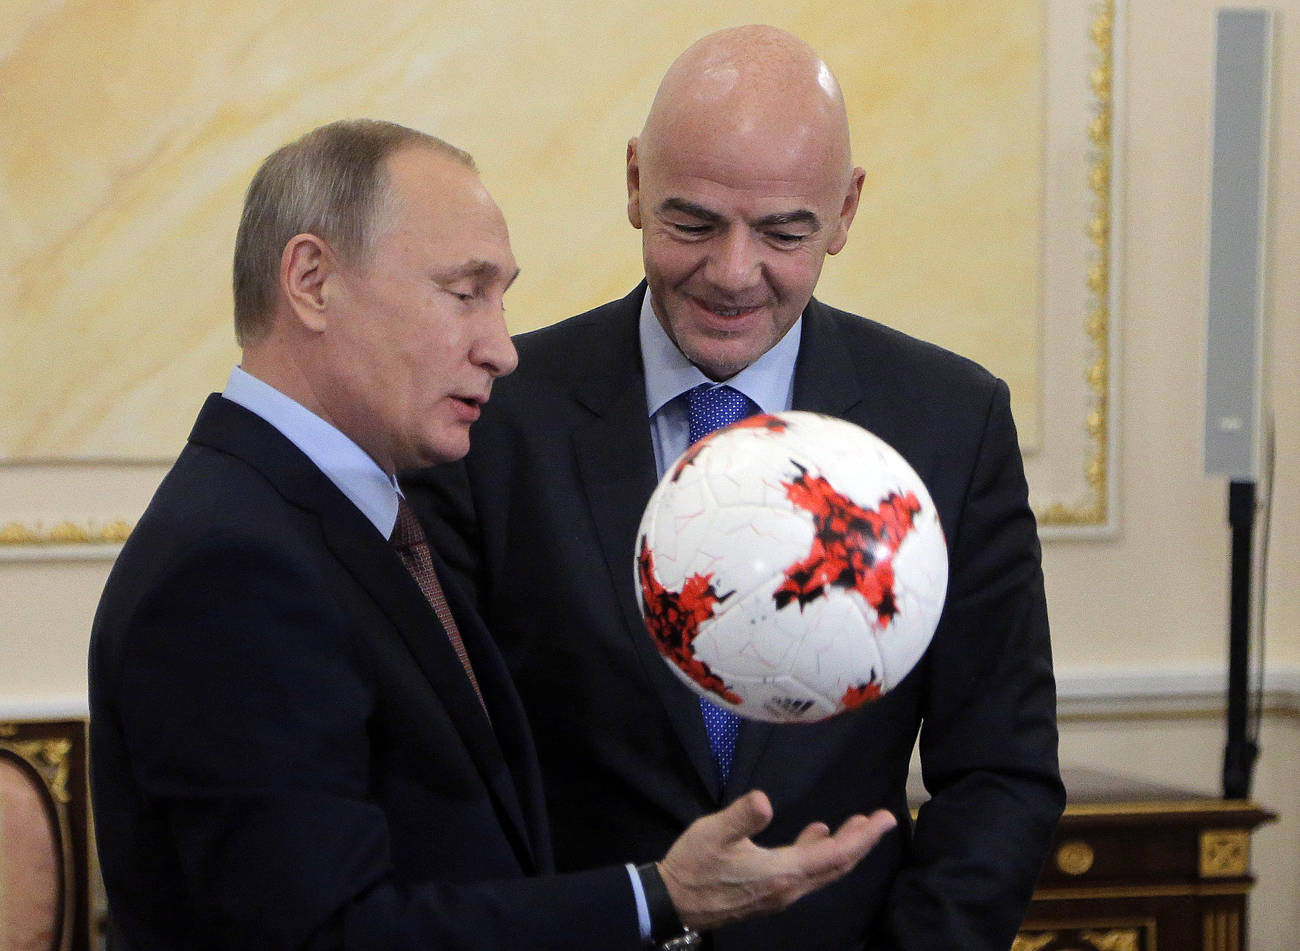 Russian President Vladimir Putin (L) receives an official match ball for the 2017 FIFA Confederations Cup from FIFA President Gianni Infantino during a meeting at the Kremlin in Moscow, Russia